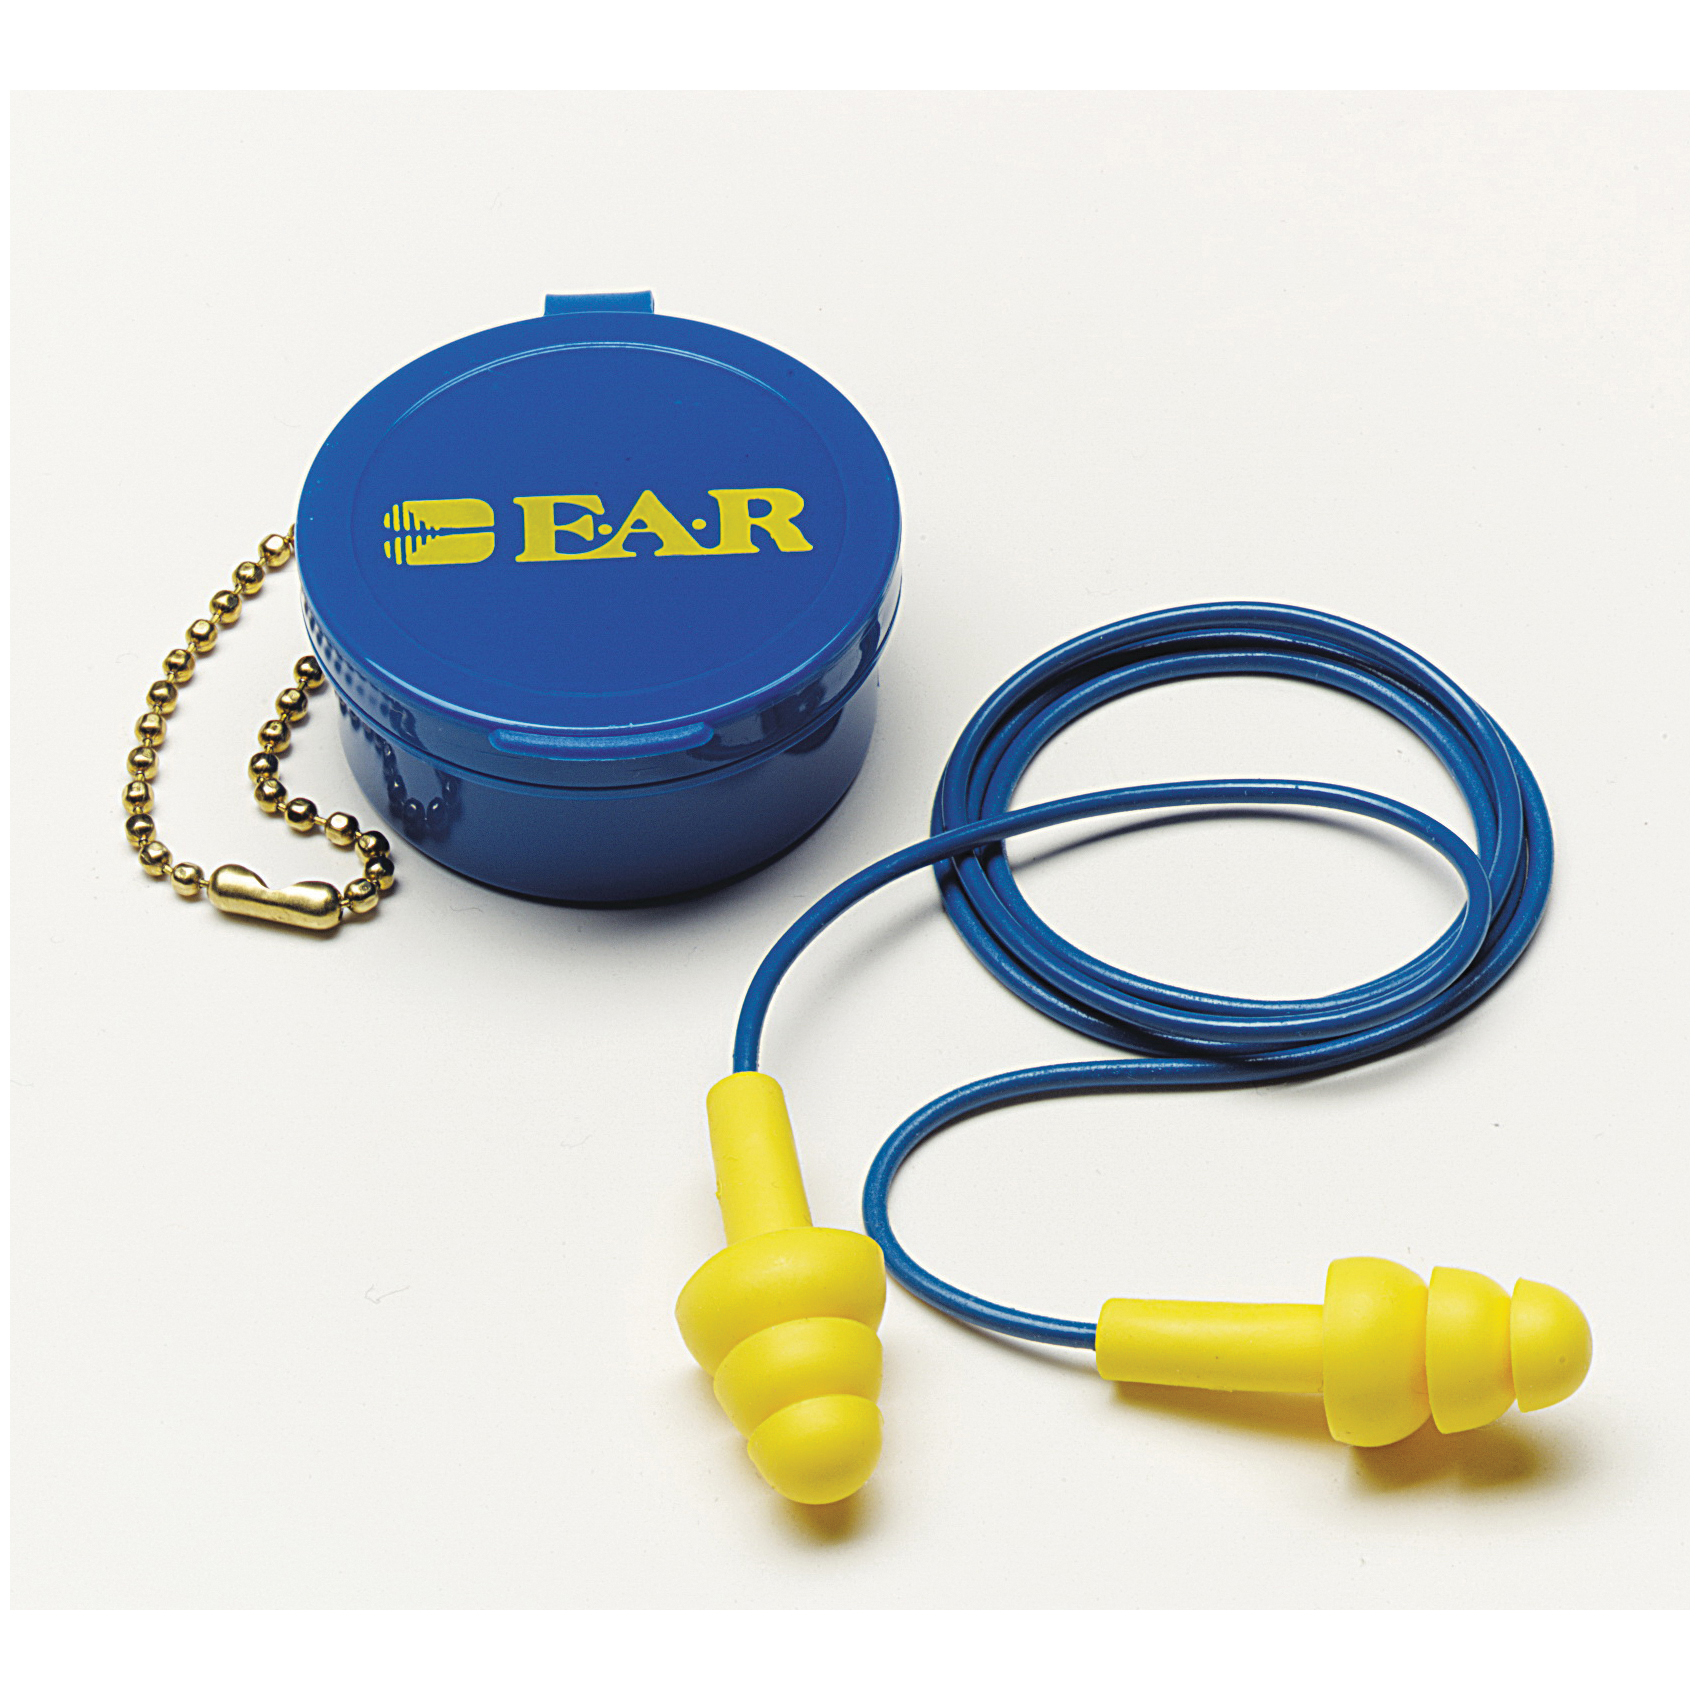 3M™ E-A-R™ 080529-40001 E-A-R UltraFit Corded Ear Plug, 25 dB Noise Reduction, Flange, Specifications Met: ANSI S3.19-1974, CSA Certified Class AL, Reusable